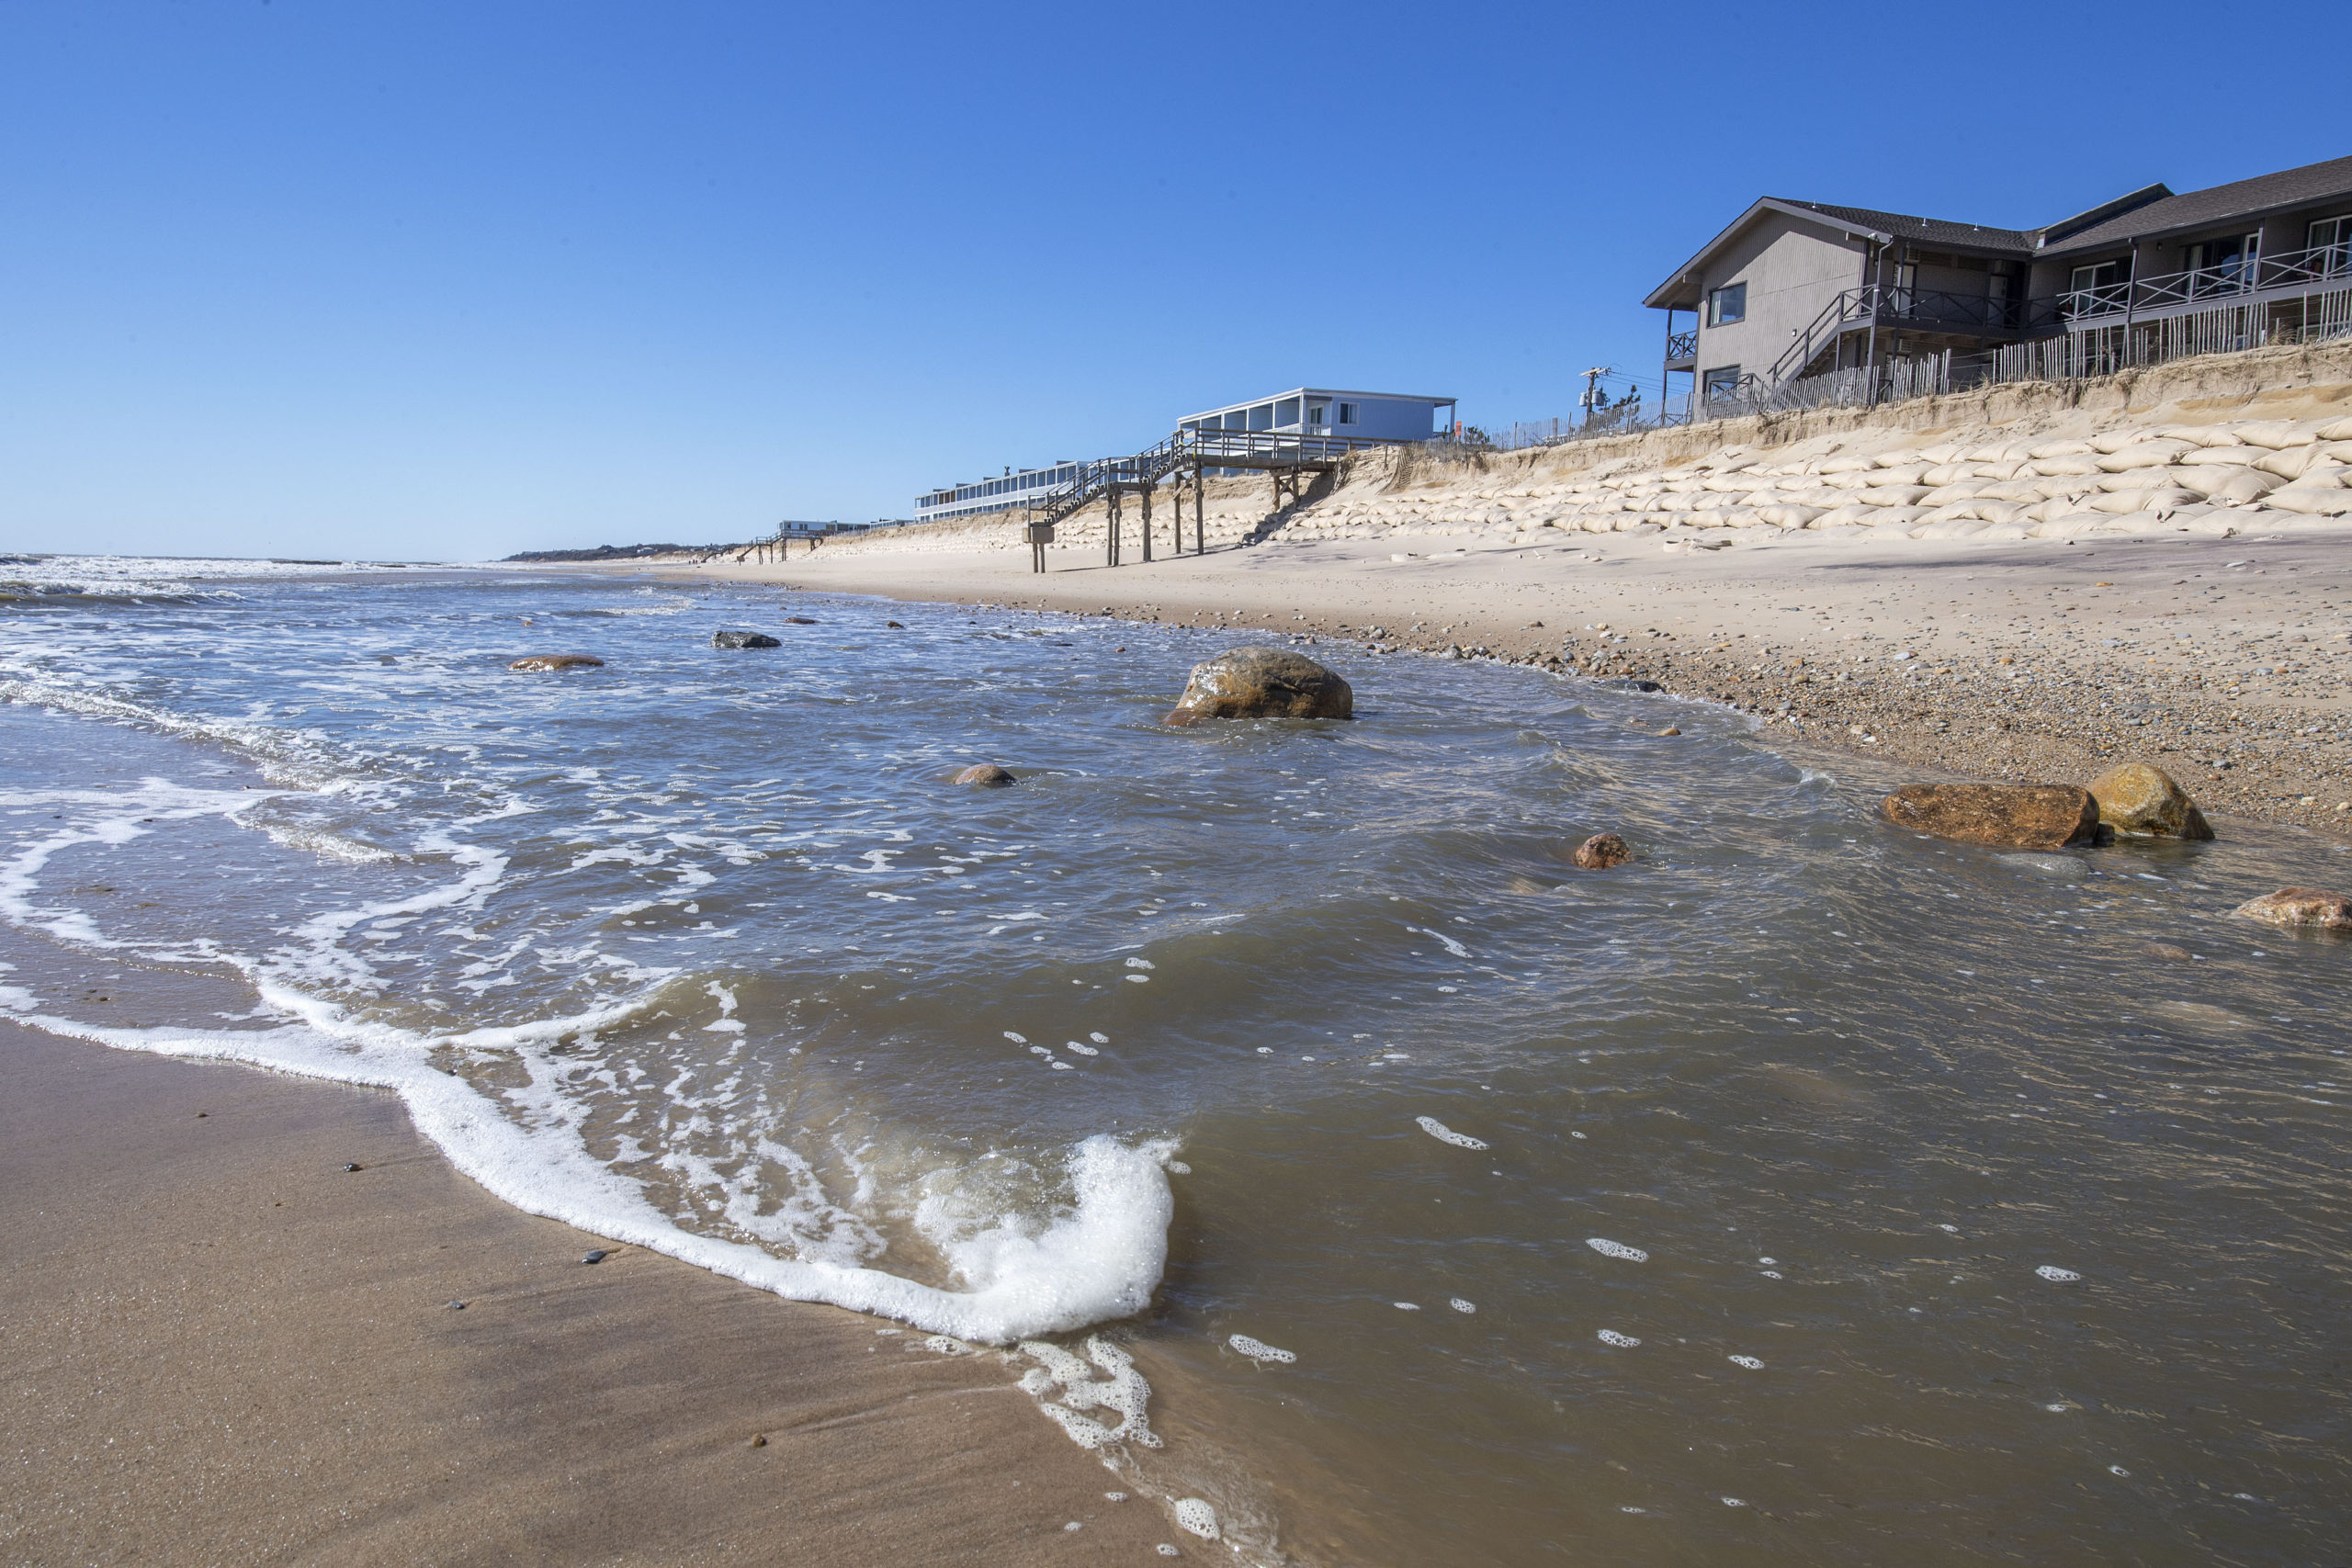 Montauk's beachfront suffered from severe erosion this winter and will cost the town more than $750,000 to replace the lost sand. Residents and officials are pleading with the Army Corps of Engineers to bump the region back up the priority list for the major beach nourishment projects coming in 2022.